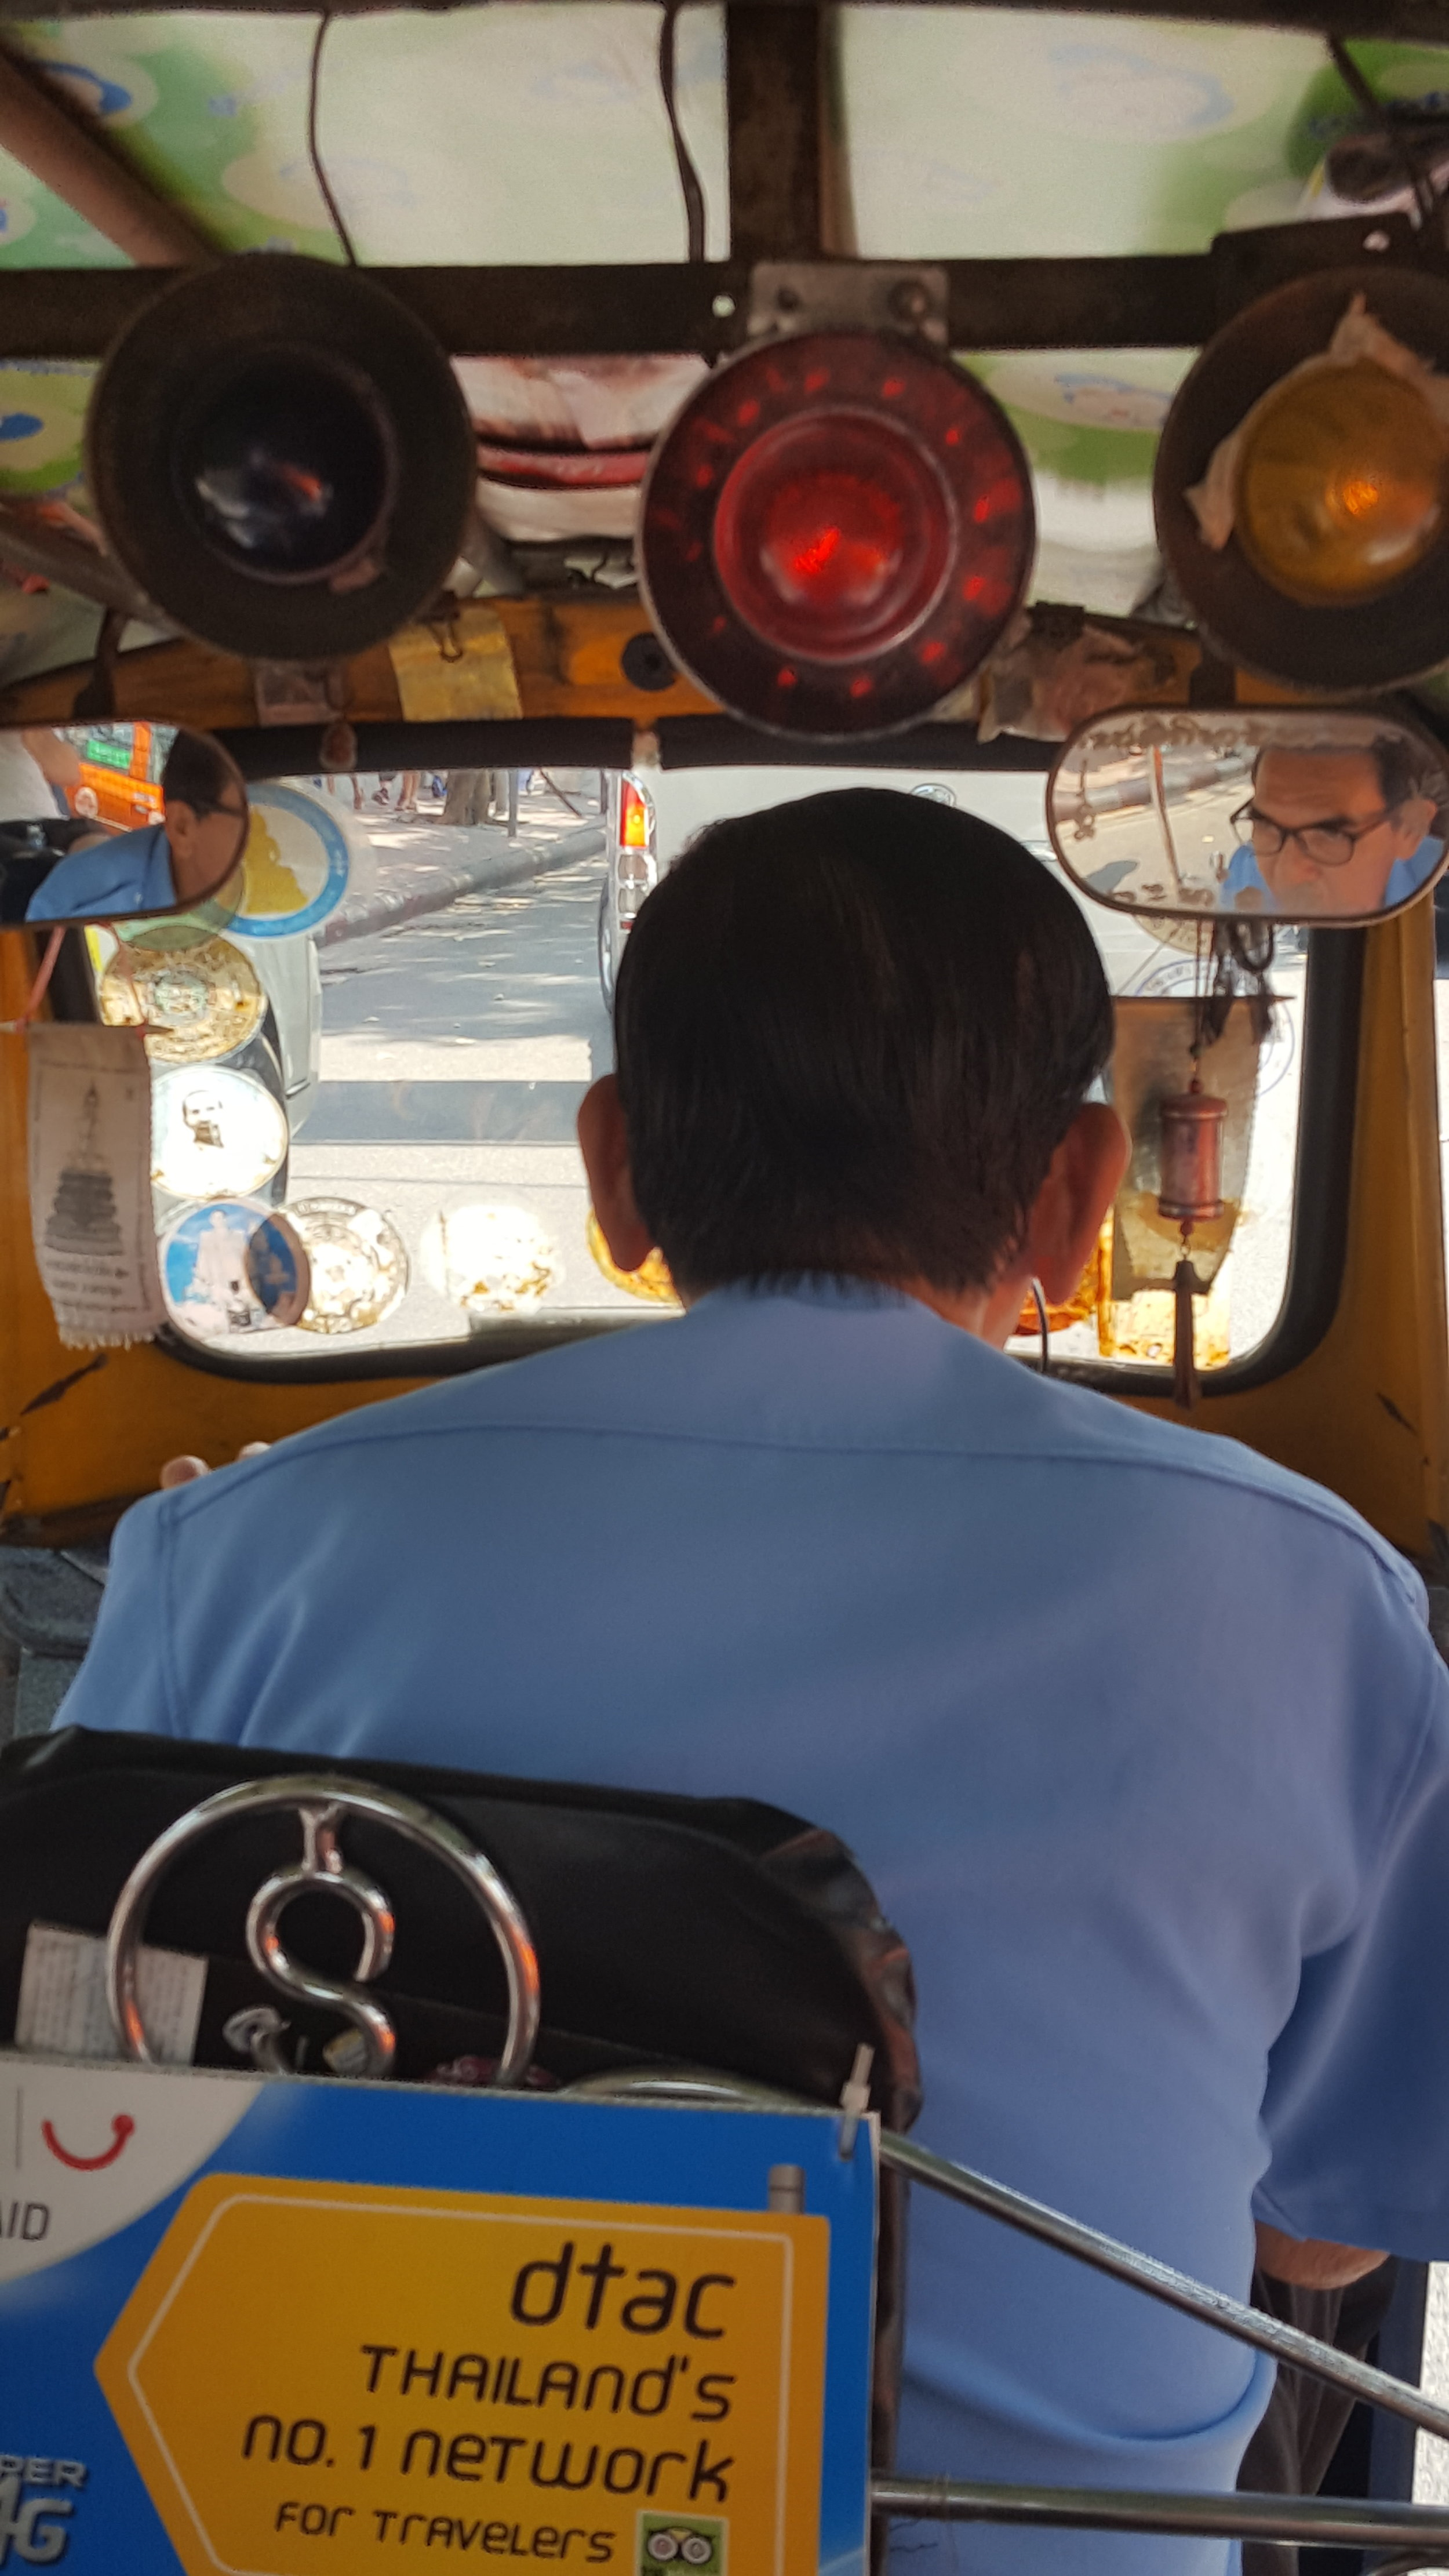 the tuk tuk experience(s) were something else... imagine weaving in and out of traffic with pizza delivery boys on scooters whizzing past you within centimetres...